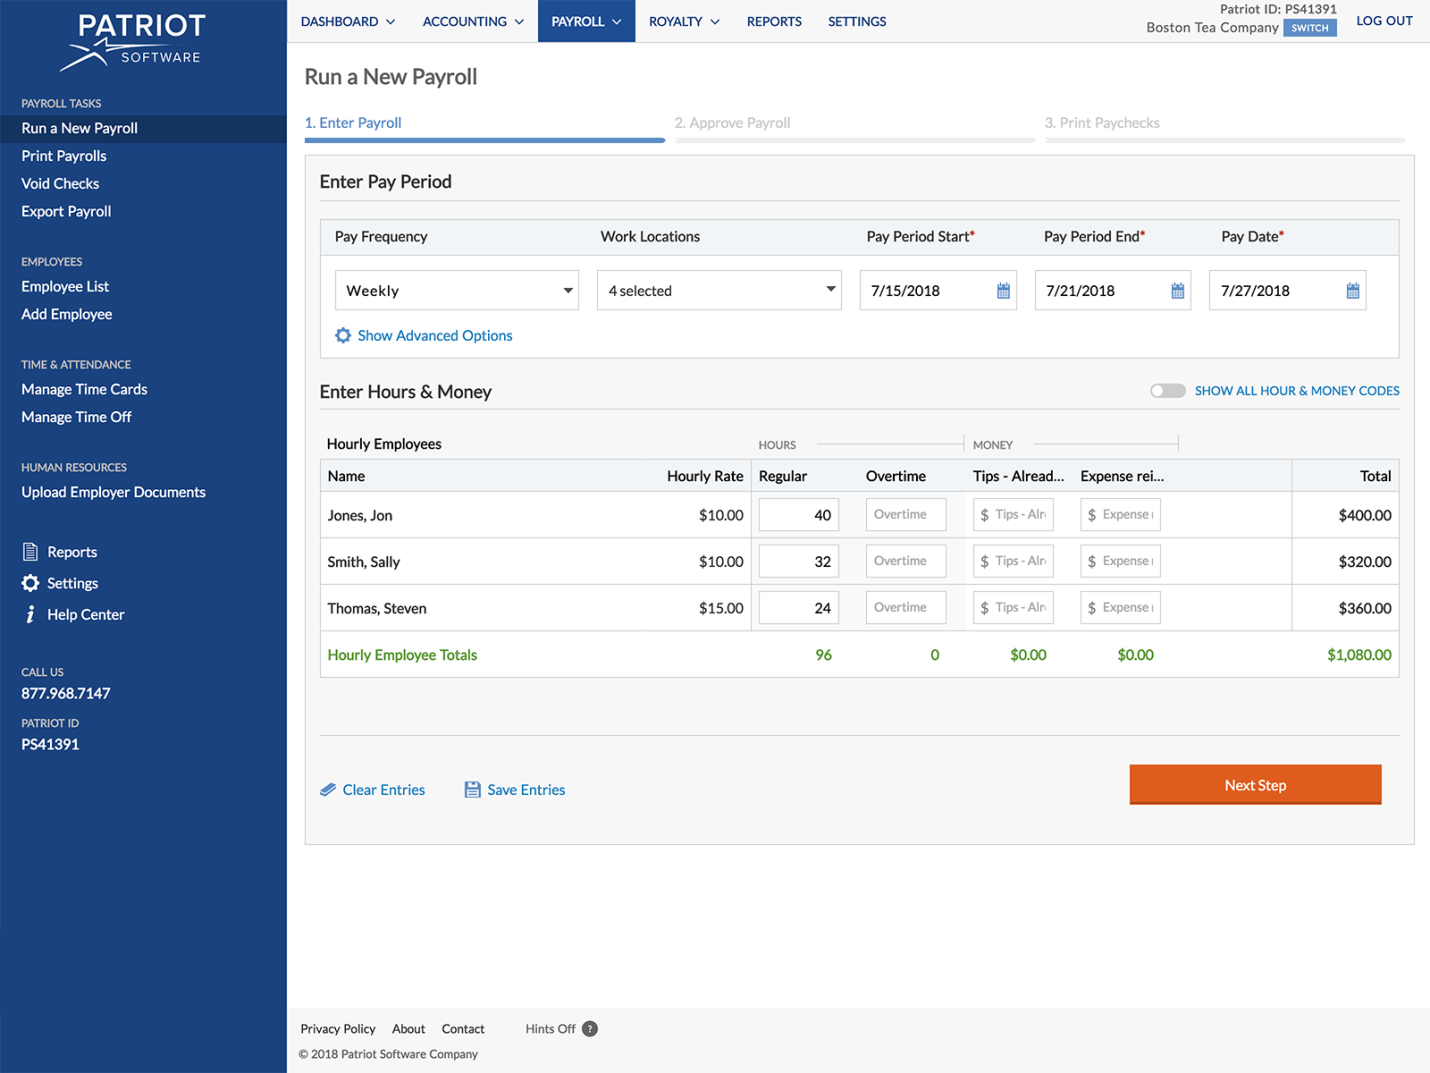 patriot payroll dashboard